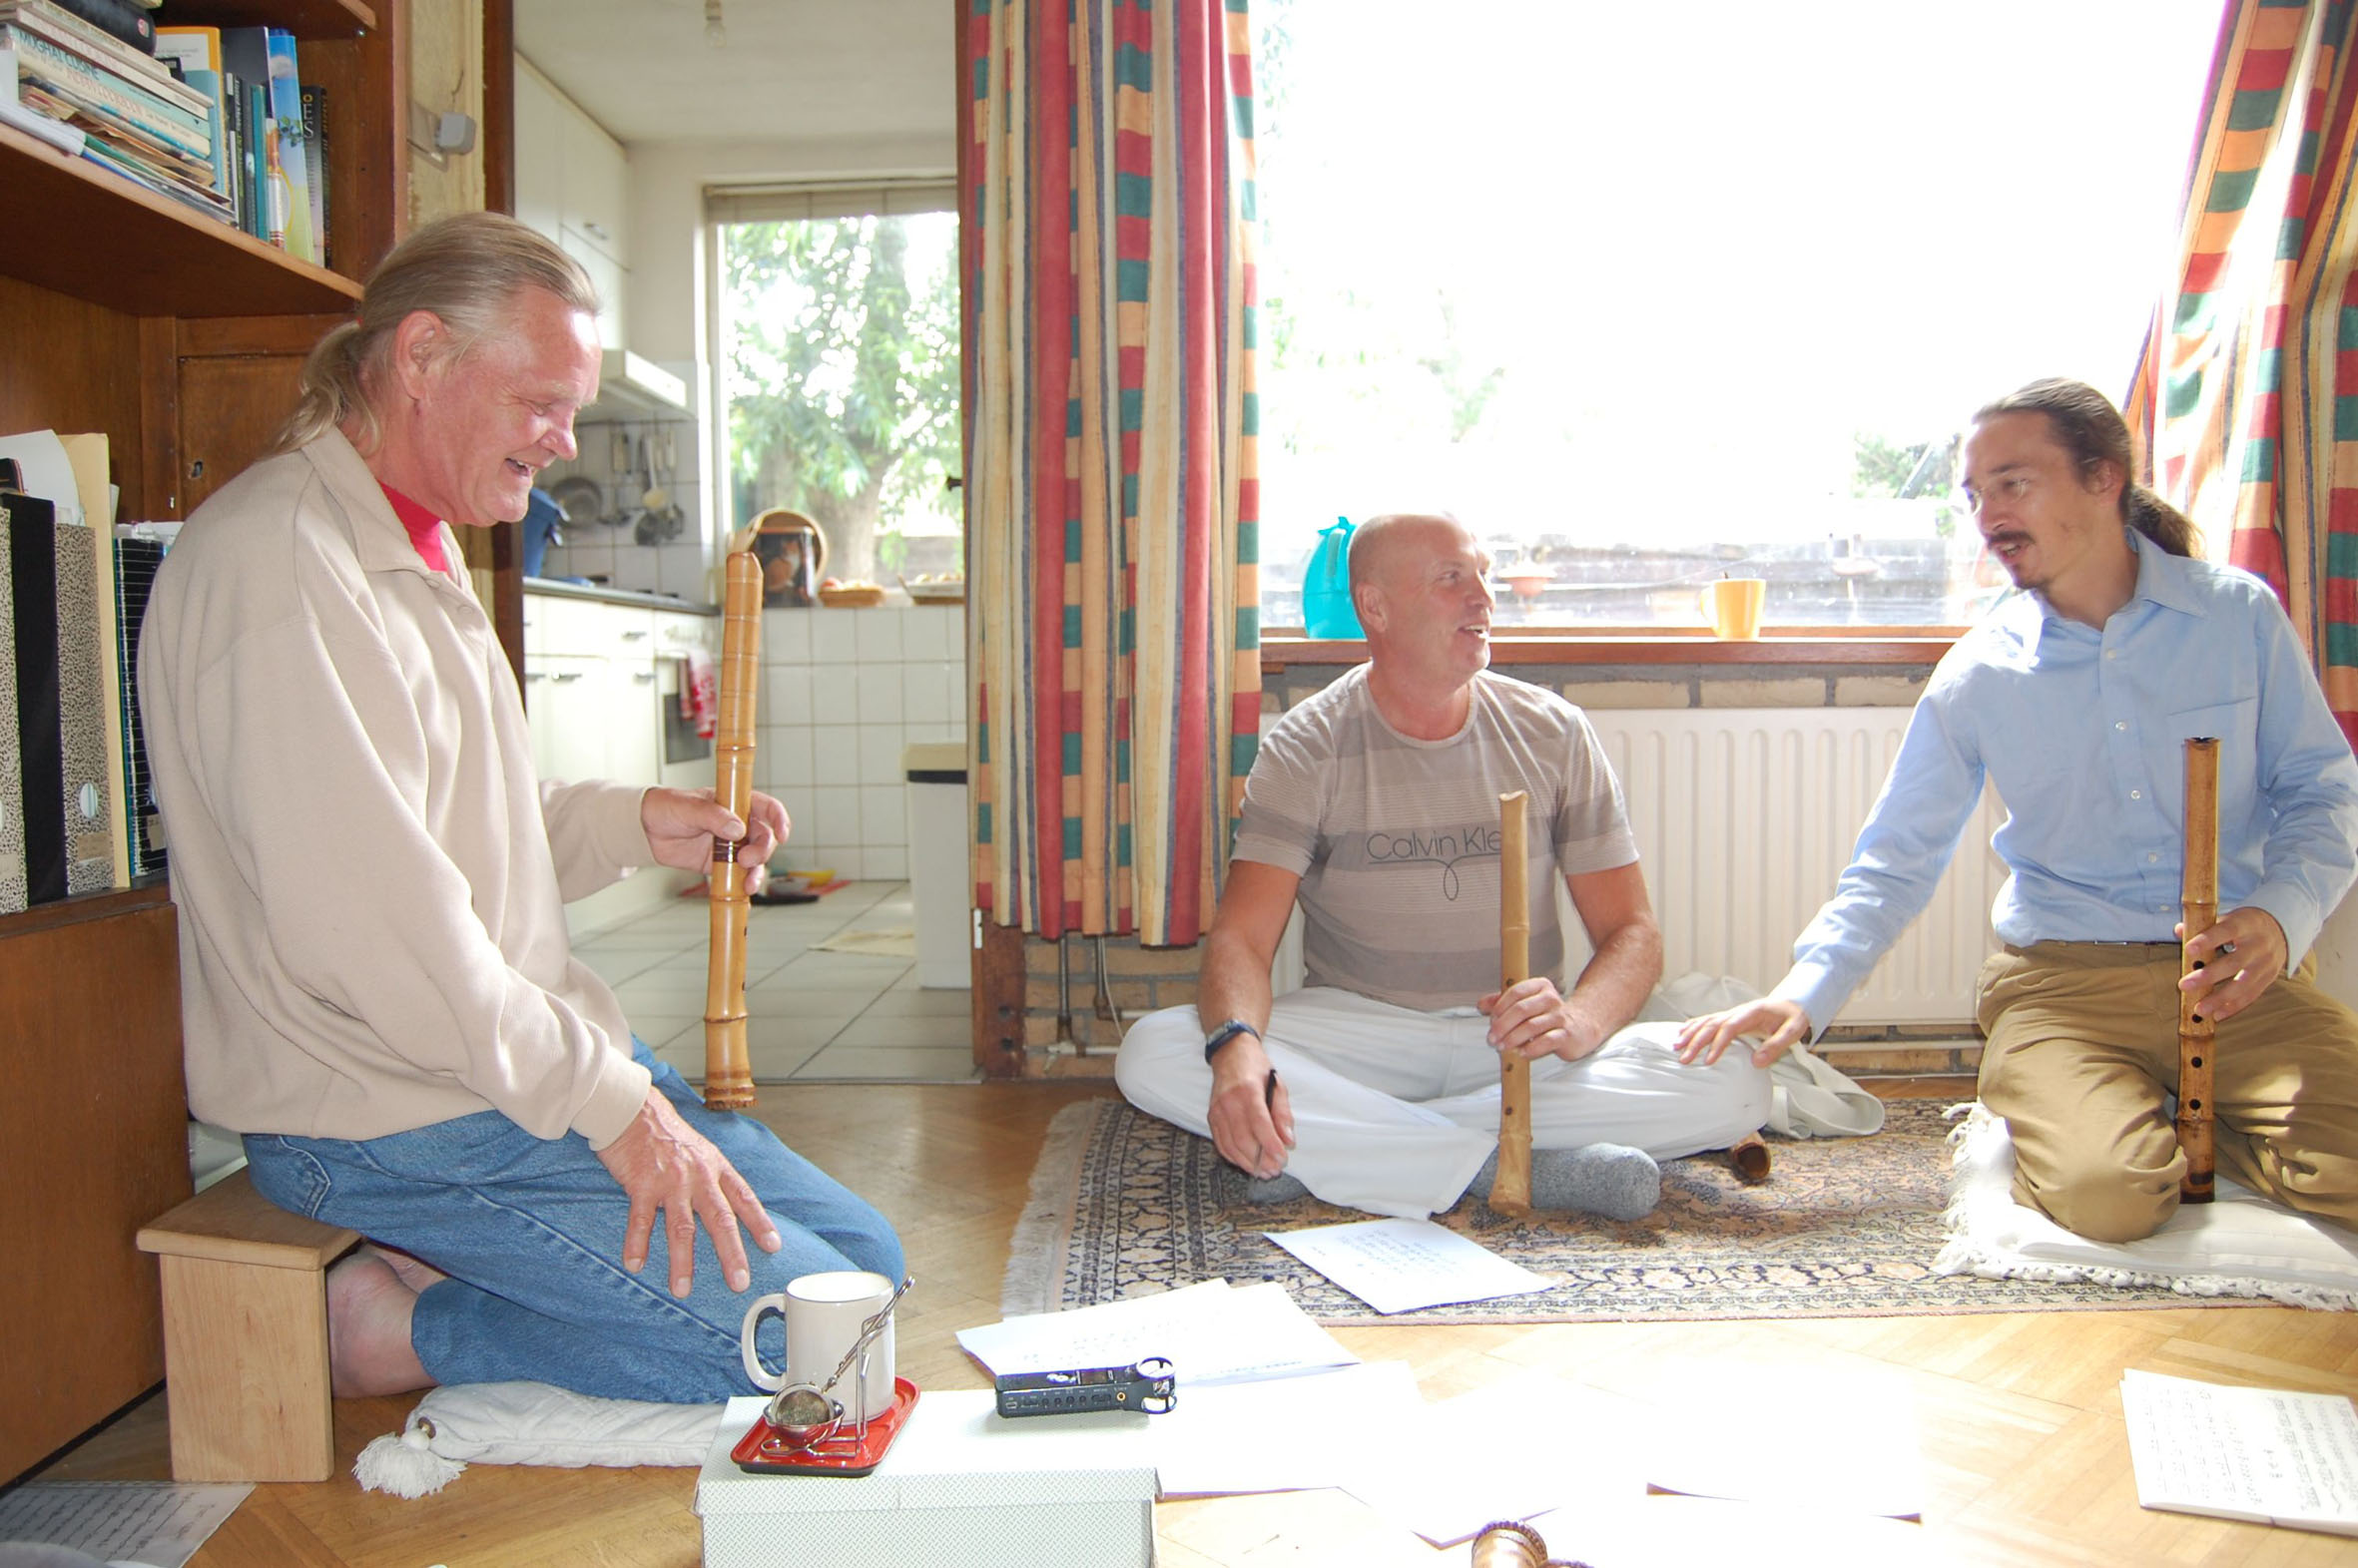 Shakuhachi workshop in Leiden, Netherlands-Holland - Justin Senryu